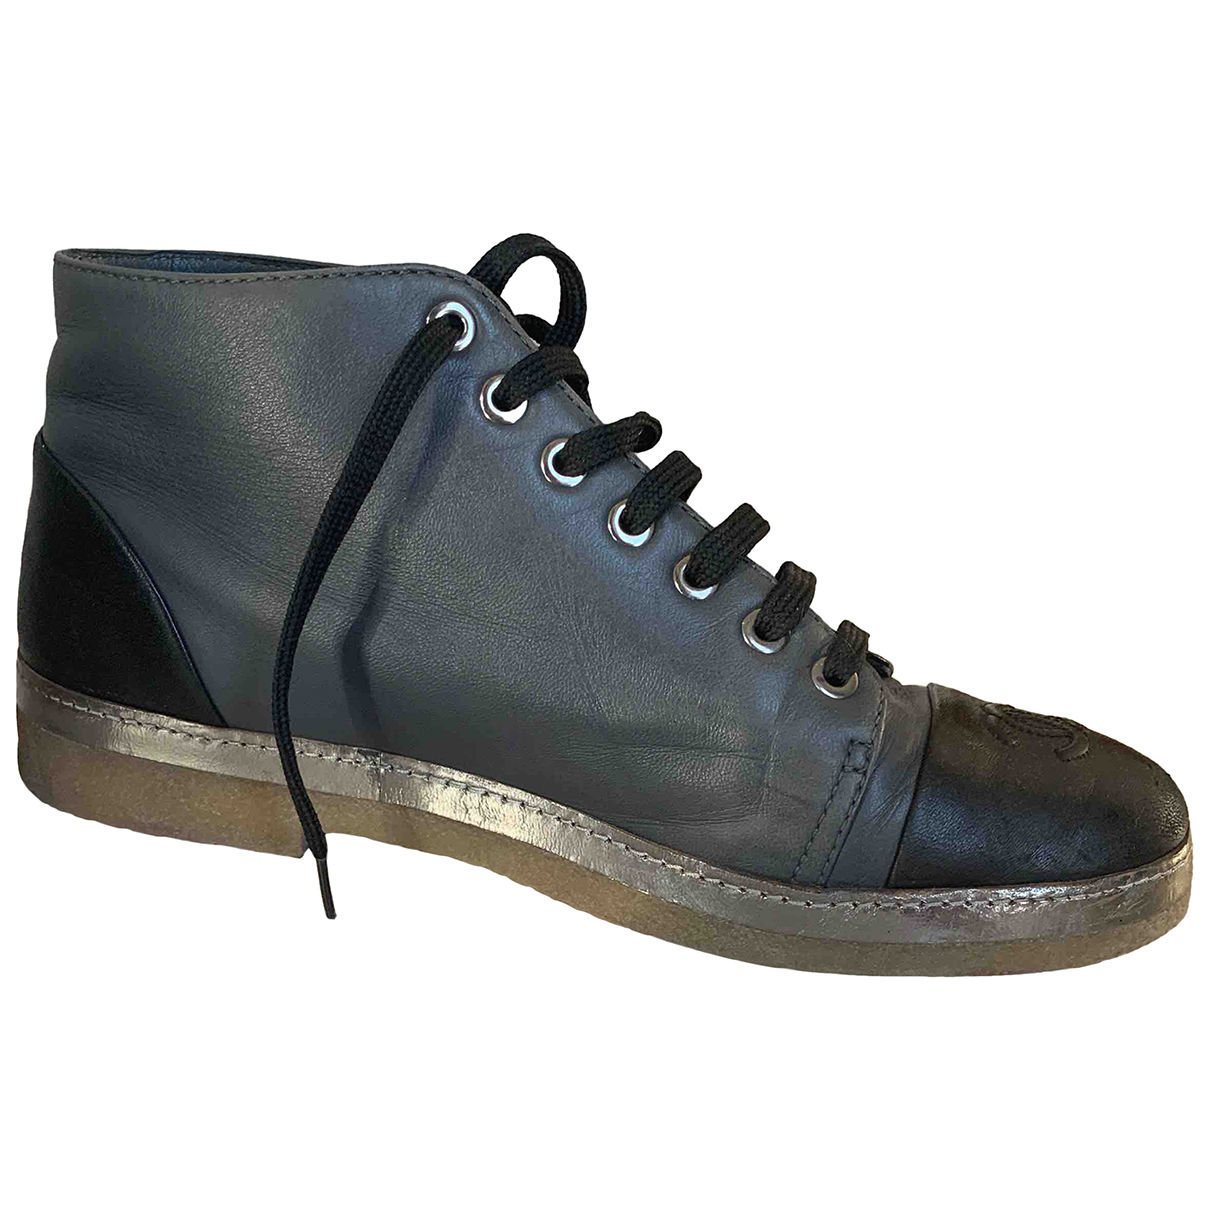 Chanel N Grey Leather Trainers for Women 38 EU